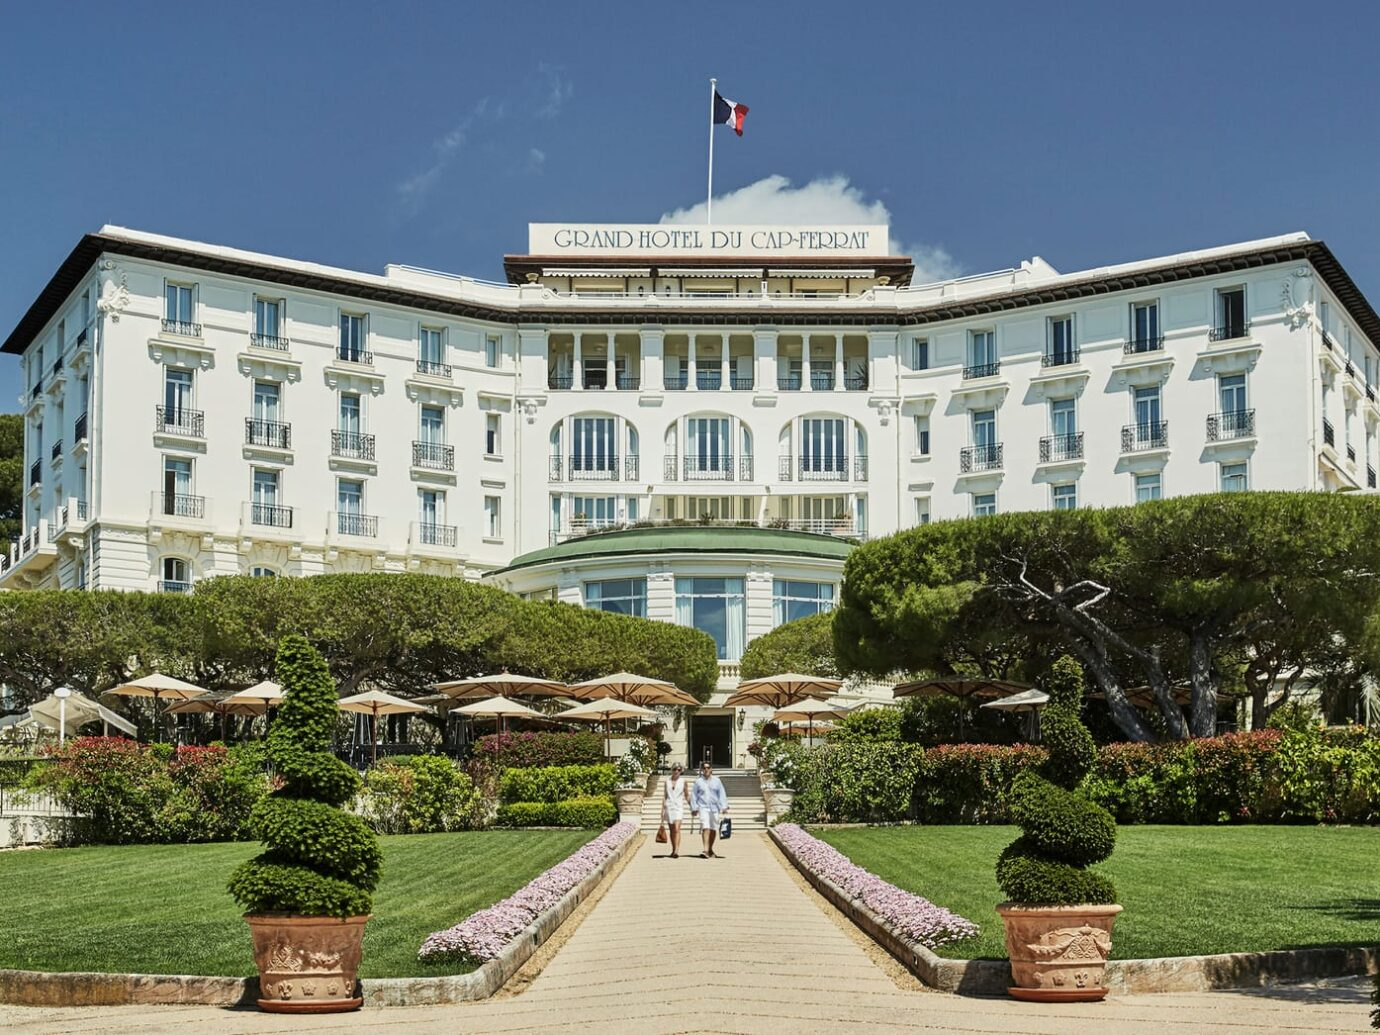 Exterior of Grand-Hôtel du Cap-Ferrat in Nice